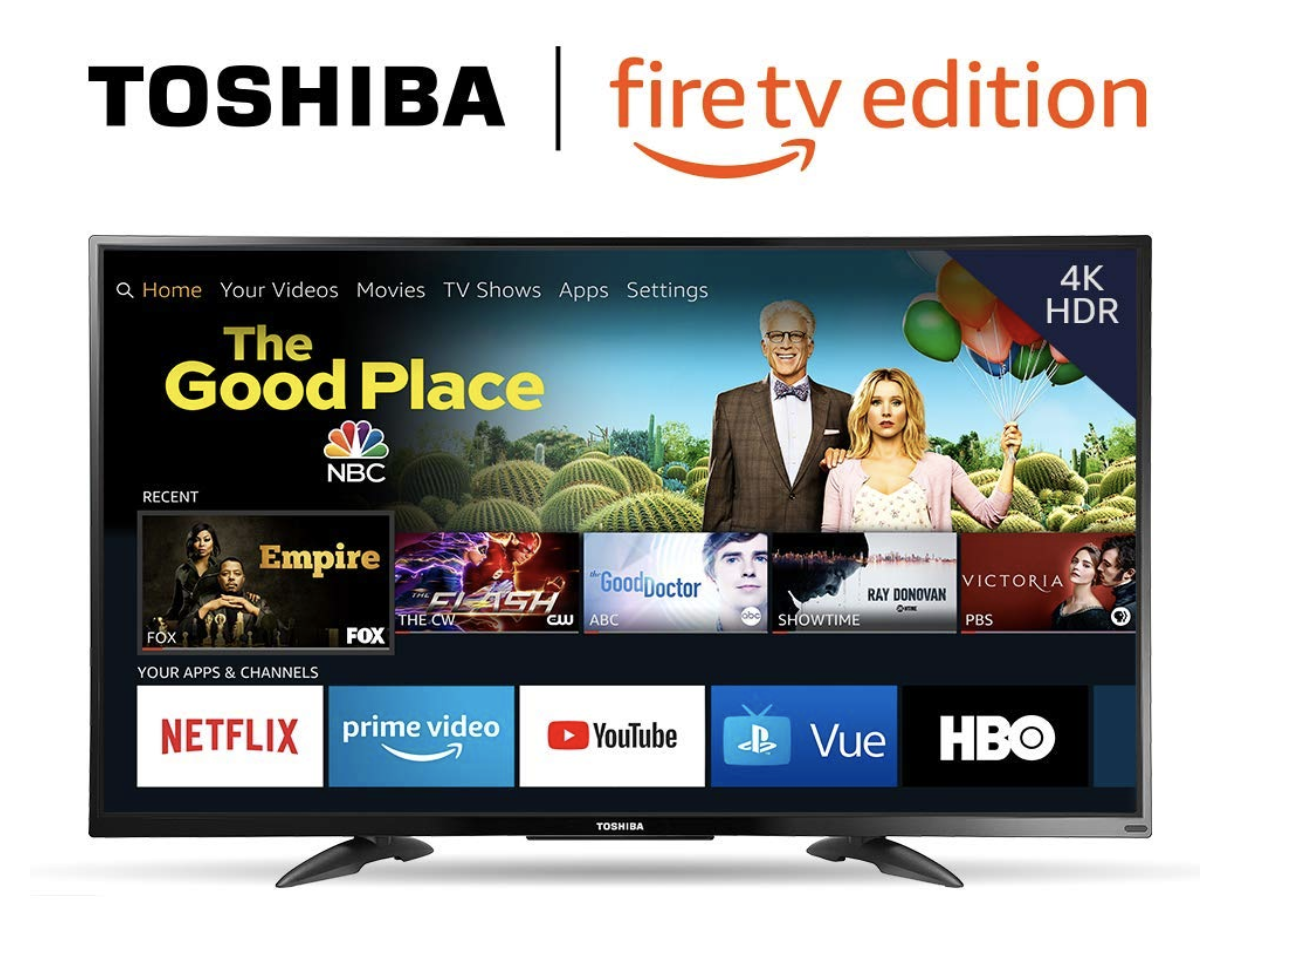 Toshiba Fire TV Edition 50-inch 4K Ultra HD Smart LED TV HDR - $279.99 (Down From $379.99)